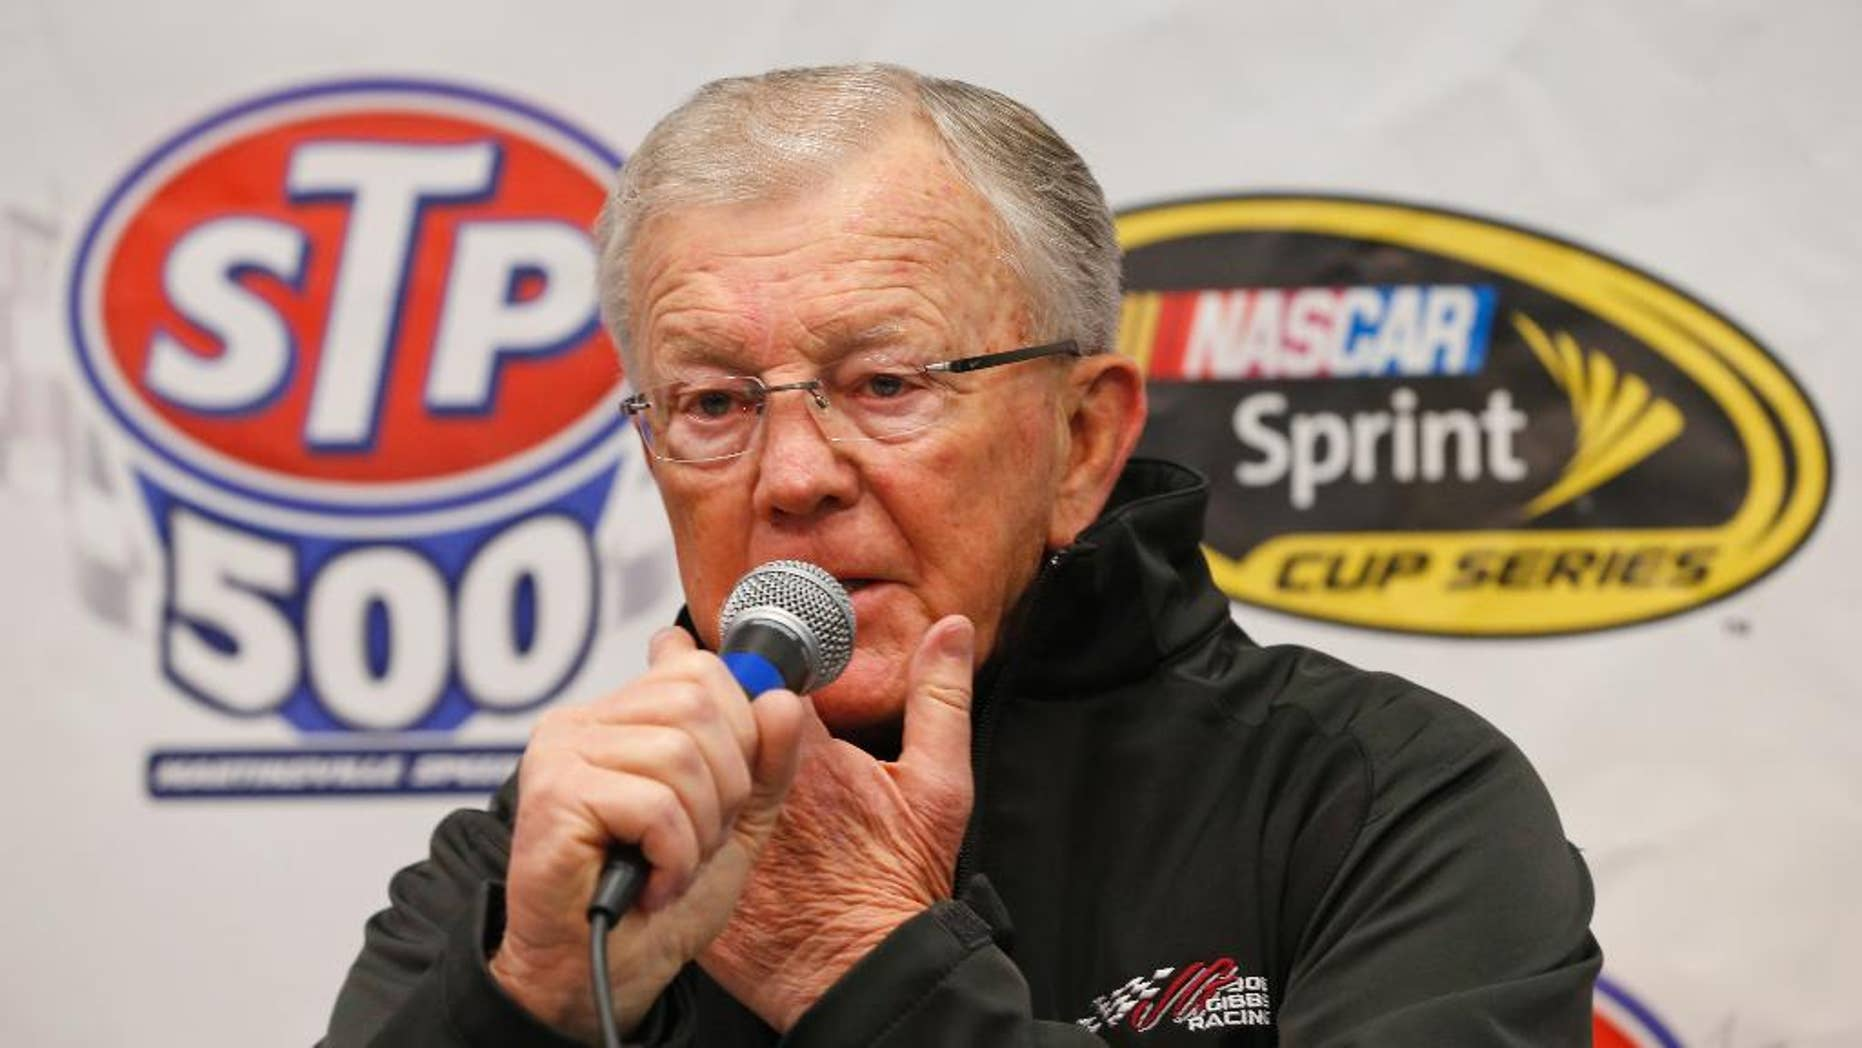 "Nascar team owner Joe Gibbs, addresses the media about the condition of his son J.D. Gibbs in the media center prior to the start of the NASCAR Sprint Cup race at the Martinsville Speedway in Martinsville, Va., Sunday, March 29, 2015. Joe Gibbs Racing President J.D. Gibbs is undergoing treatment for ""symptoms impacting areas of brain function,"" which likely stem from a head injury suffered earlier in life. (AP Photo/Steve Helber)"